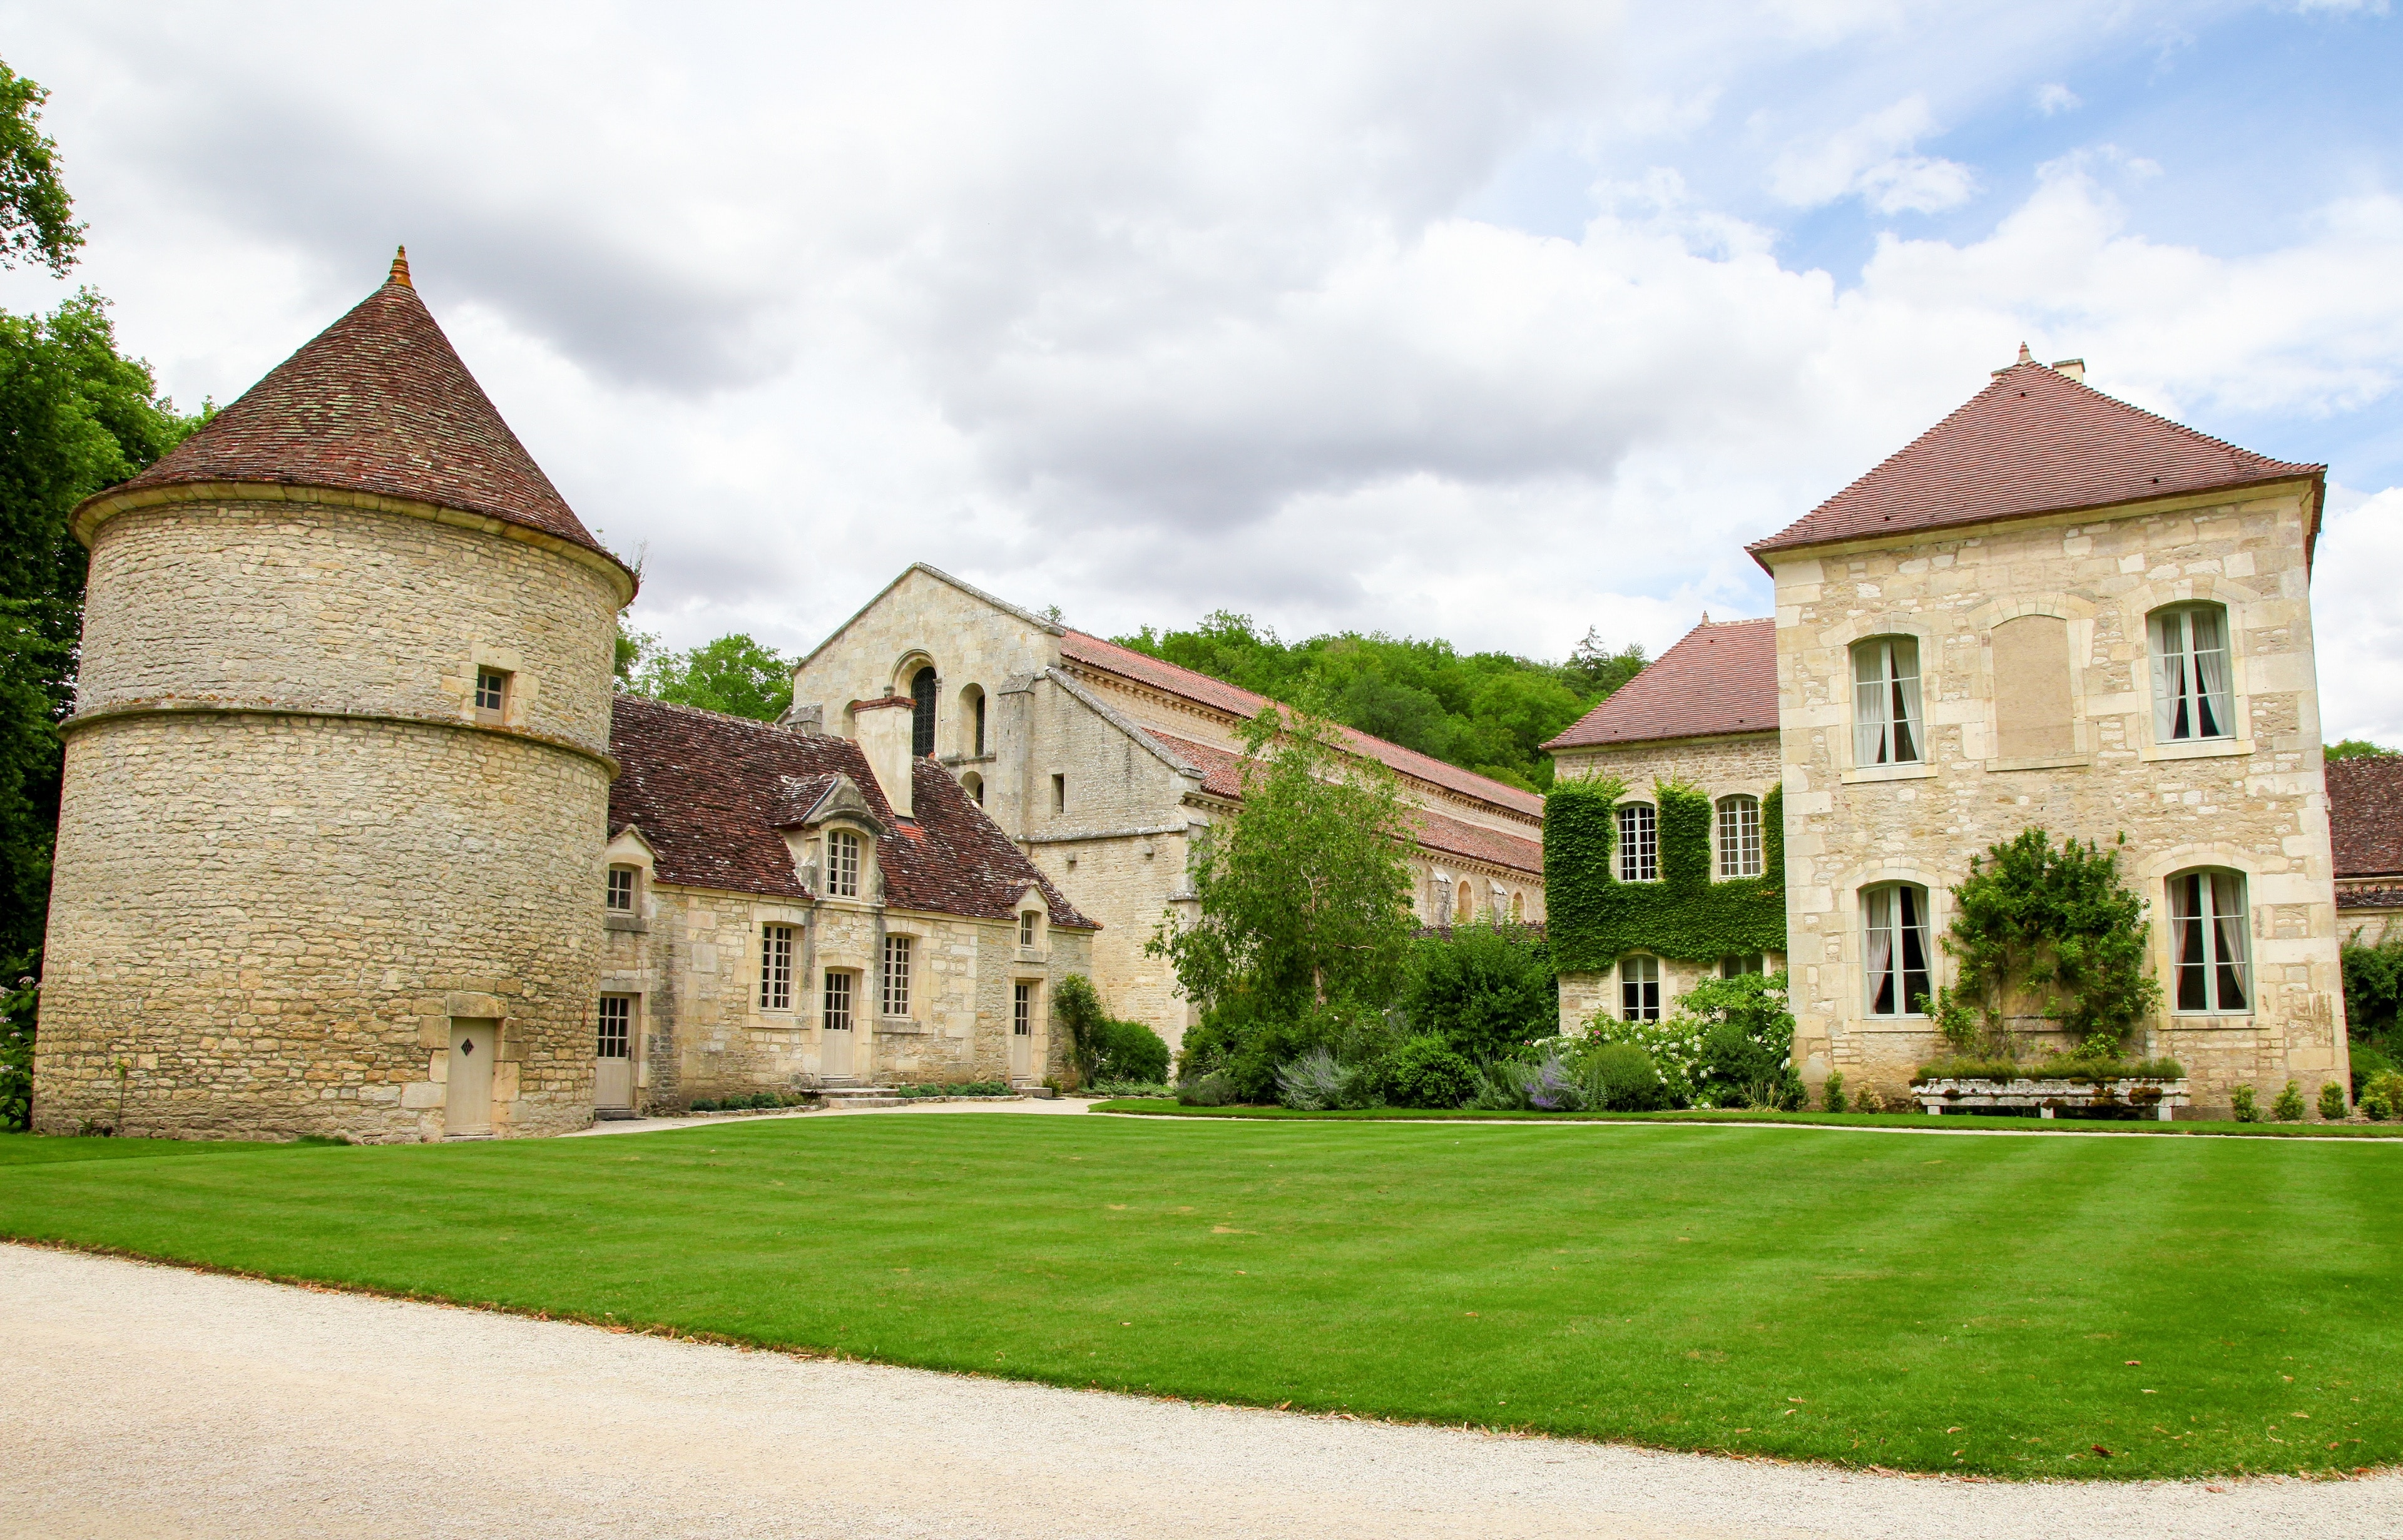 Abbey of Fontenay, Marmagne, Cote d'Or, France